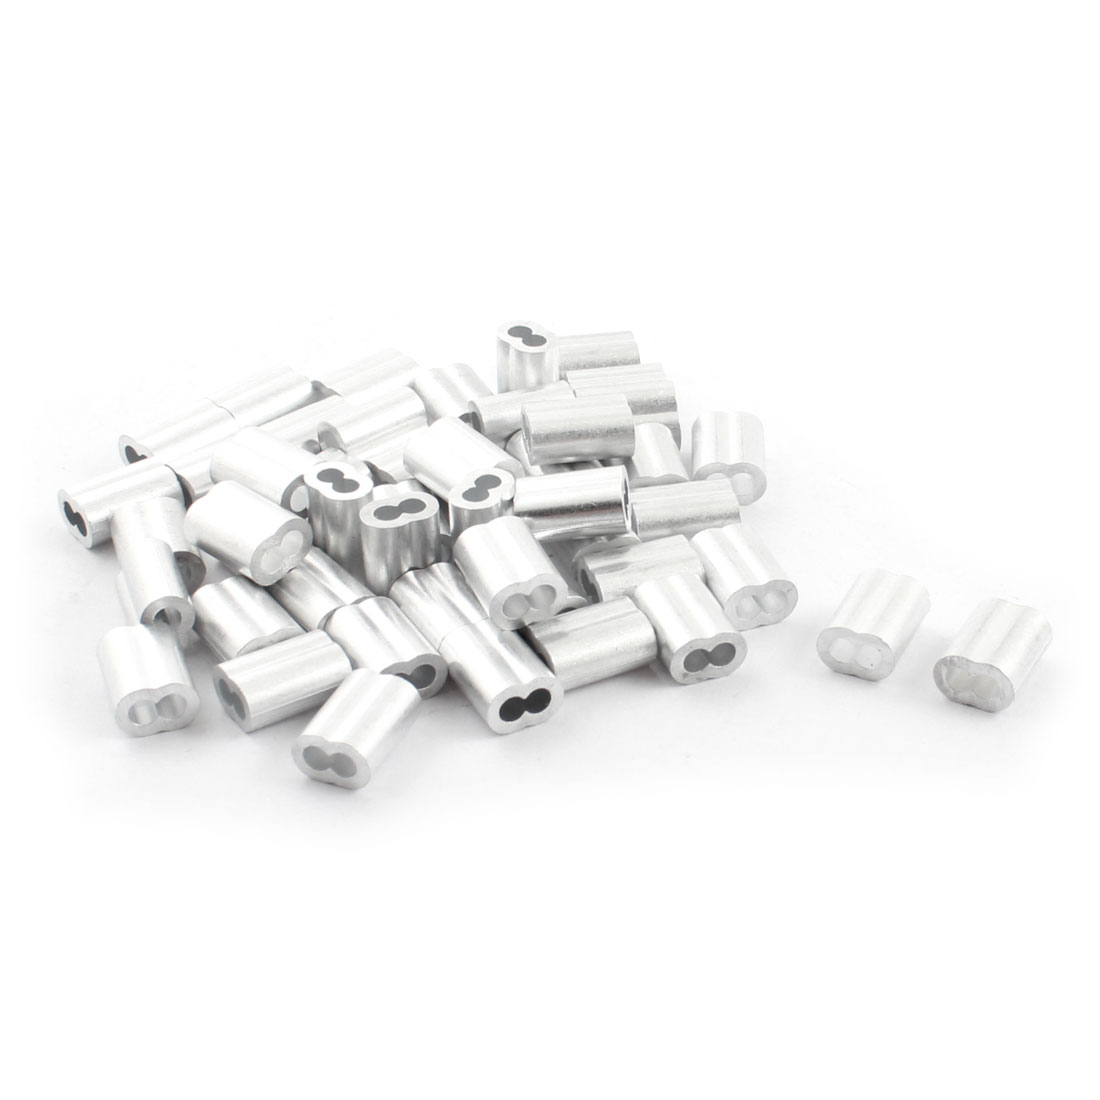 50Pcs 15mm Aluminum Hourglass Ferrules Sleeve Crimp for 3mm Wire Rope